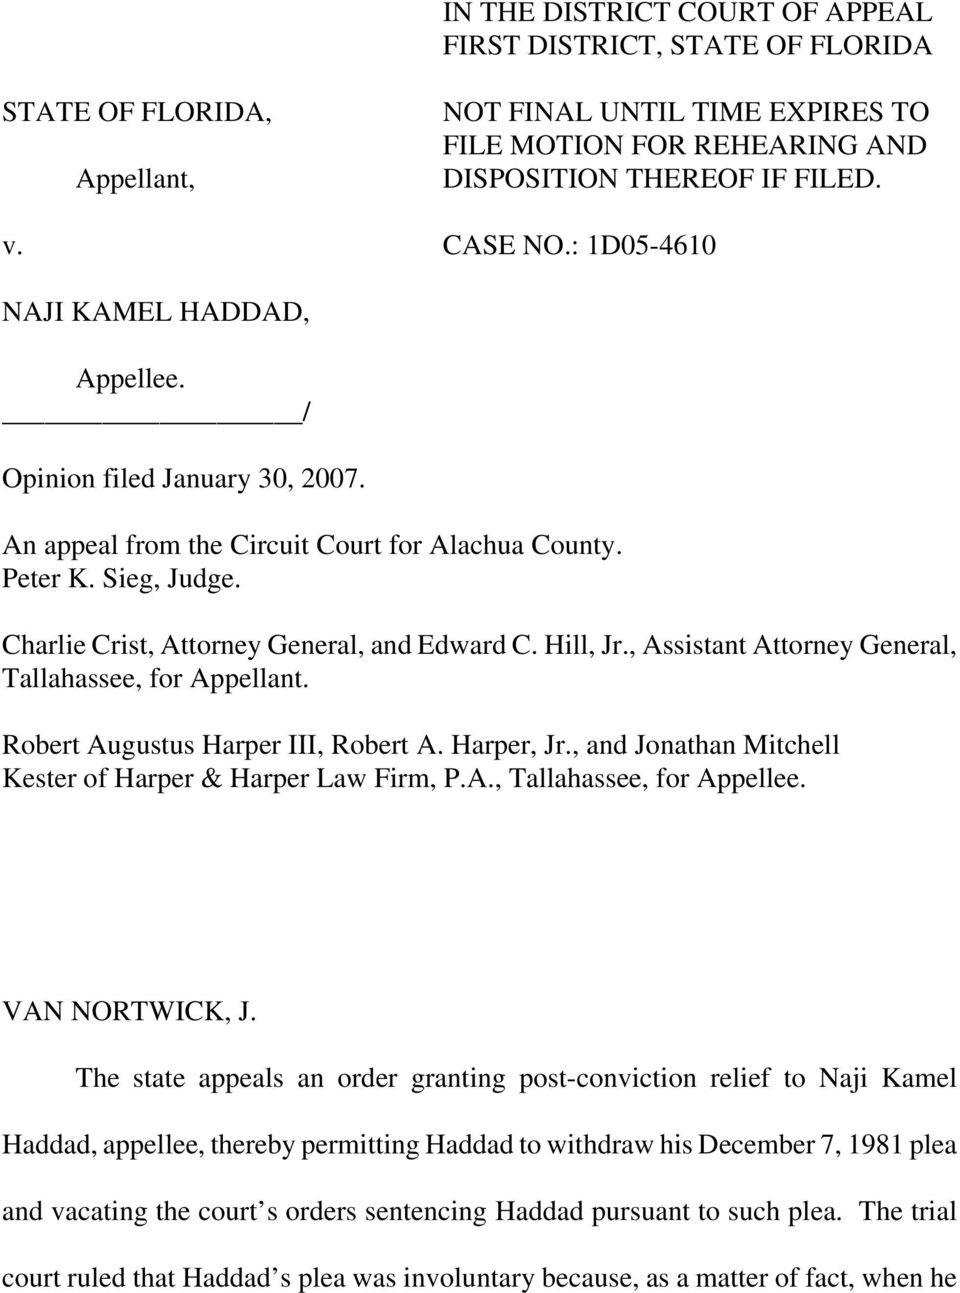 Hill, Jr., Assistant Attorney General, Tallahassee, for Appellant. Robert Augustus Harper III, Robert A. Harper, Jr., and Jonathan Mitchell Kester of Harper & Harper Law Firm, P.A., Tallahassee, for Appellee.